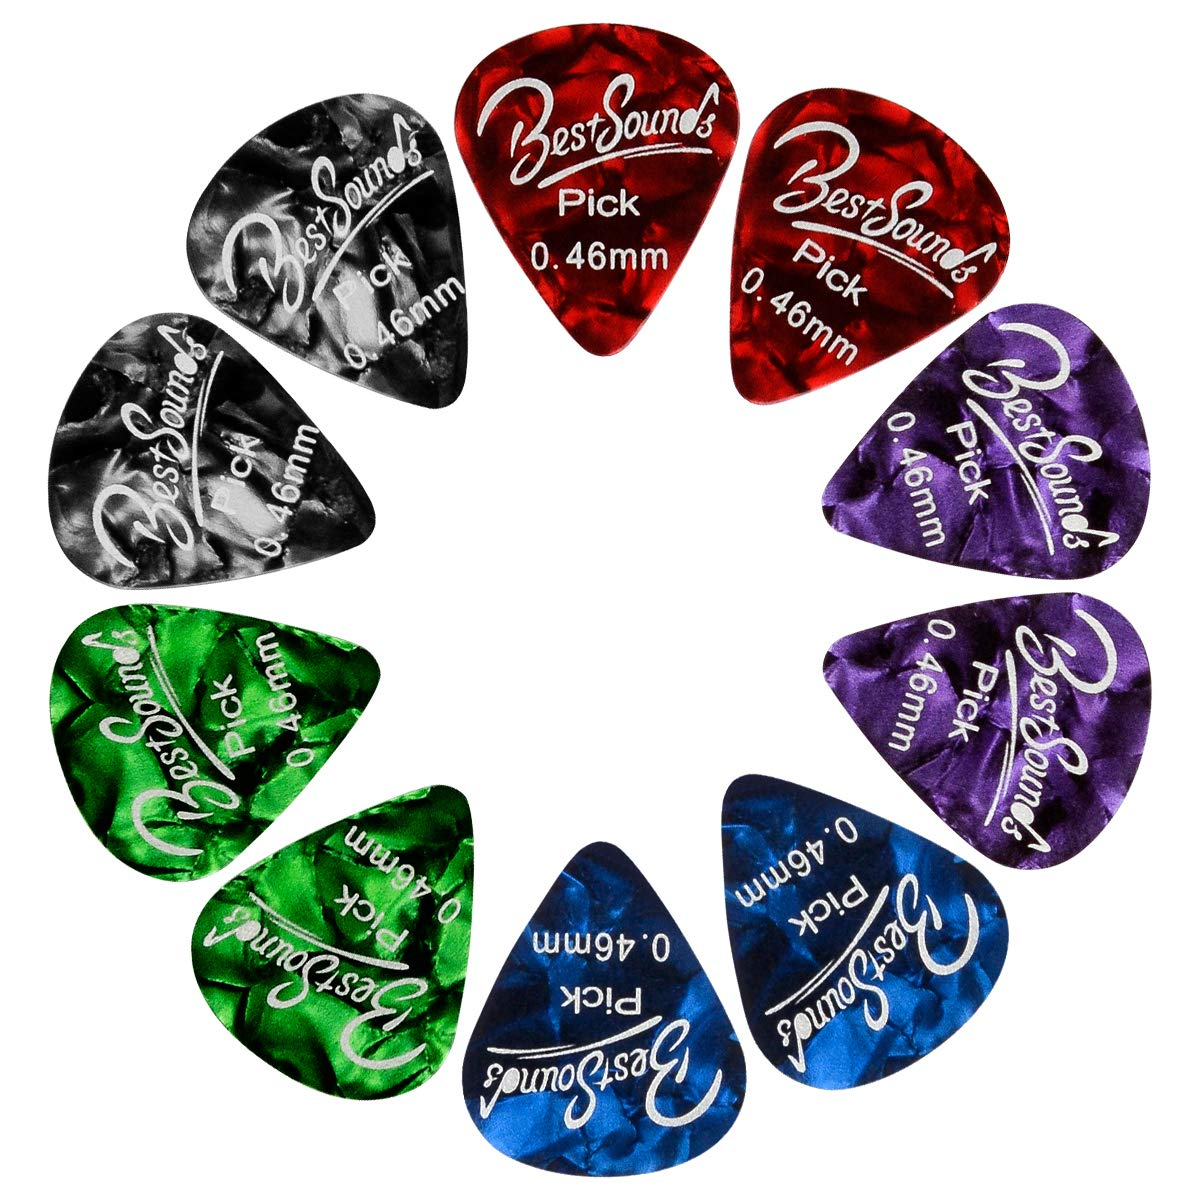 BestSounds Assorted Celluloid Guitar Picks - Unique Guitar Gift For Bass, Electric & Acoustic Guitars (Light/Thin (0.46mm), 48 Pack)